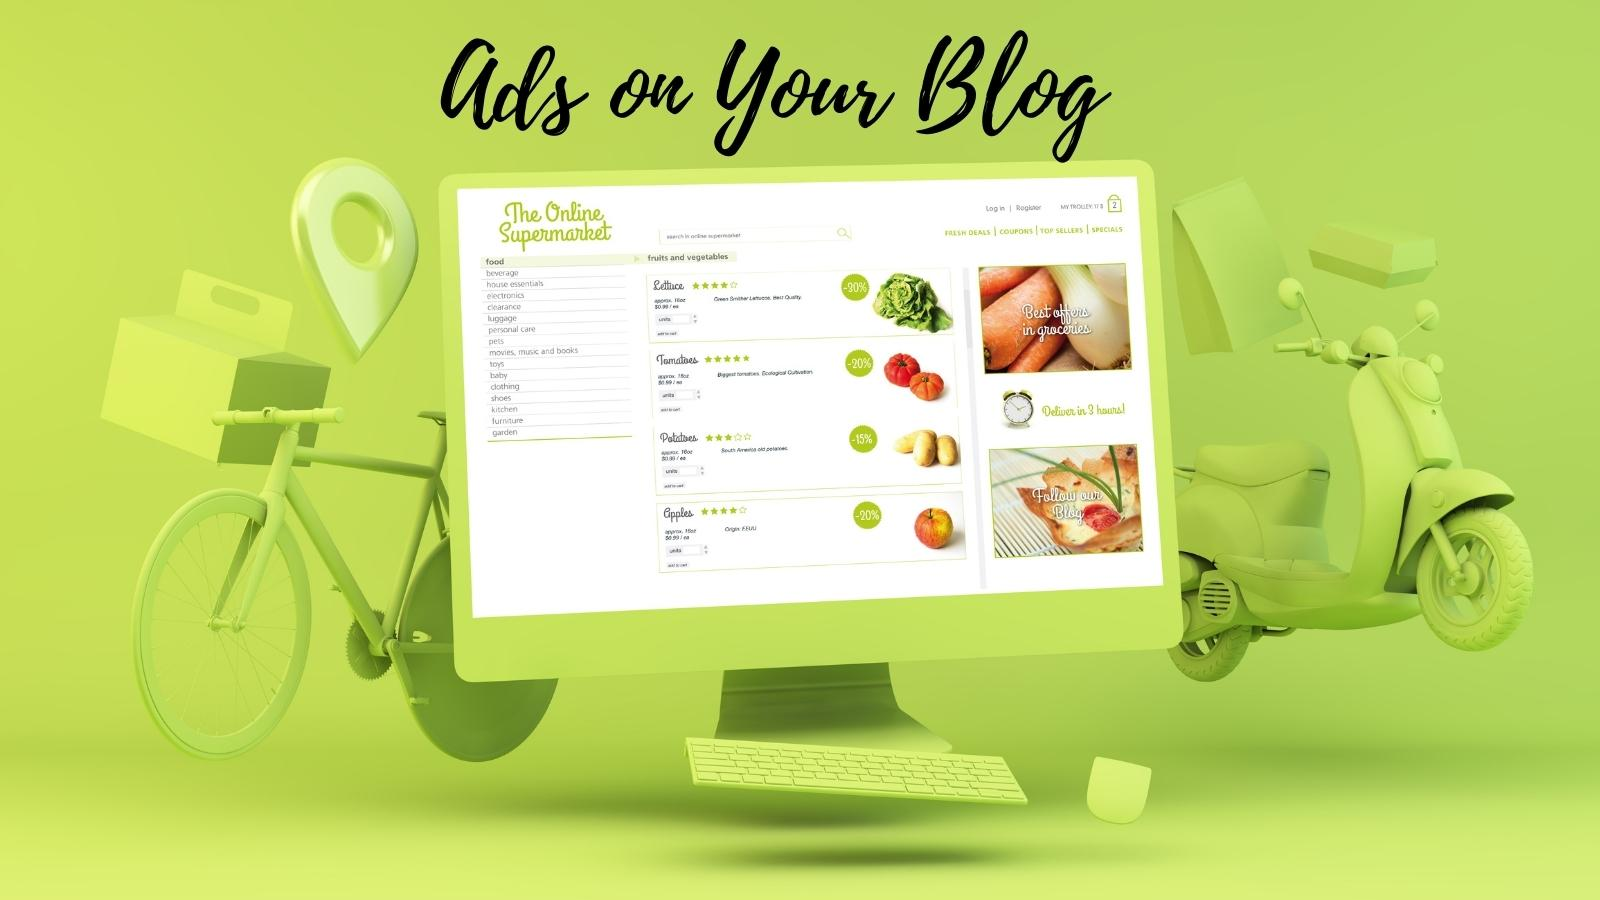 ads for your blogging hobby blog